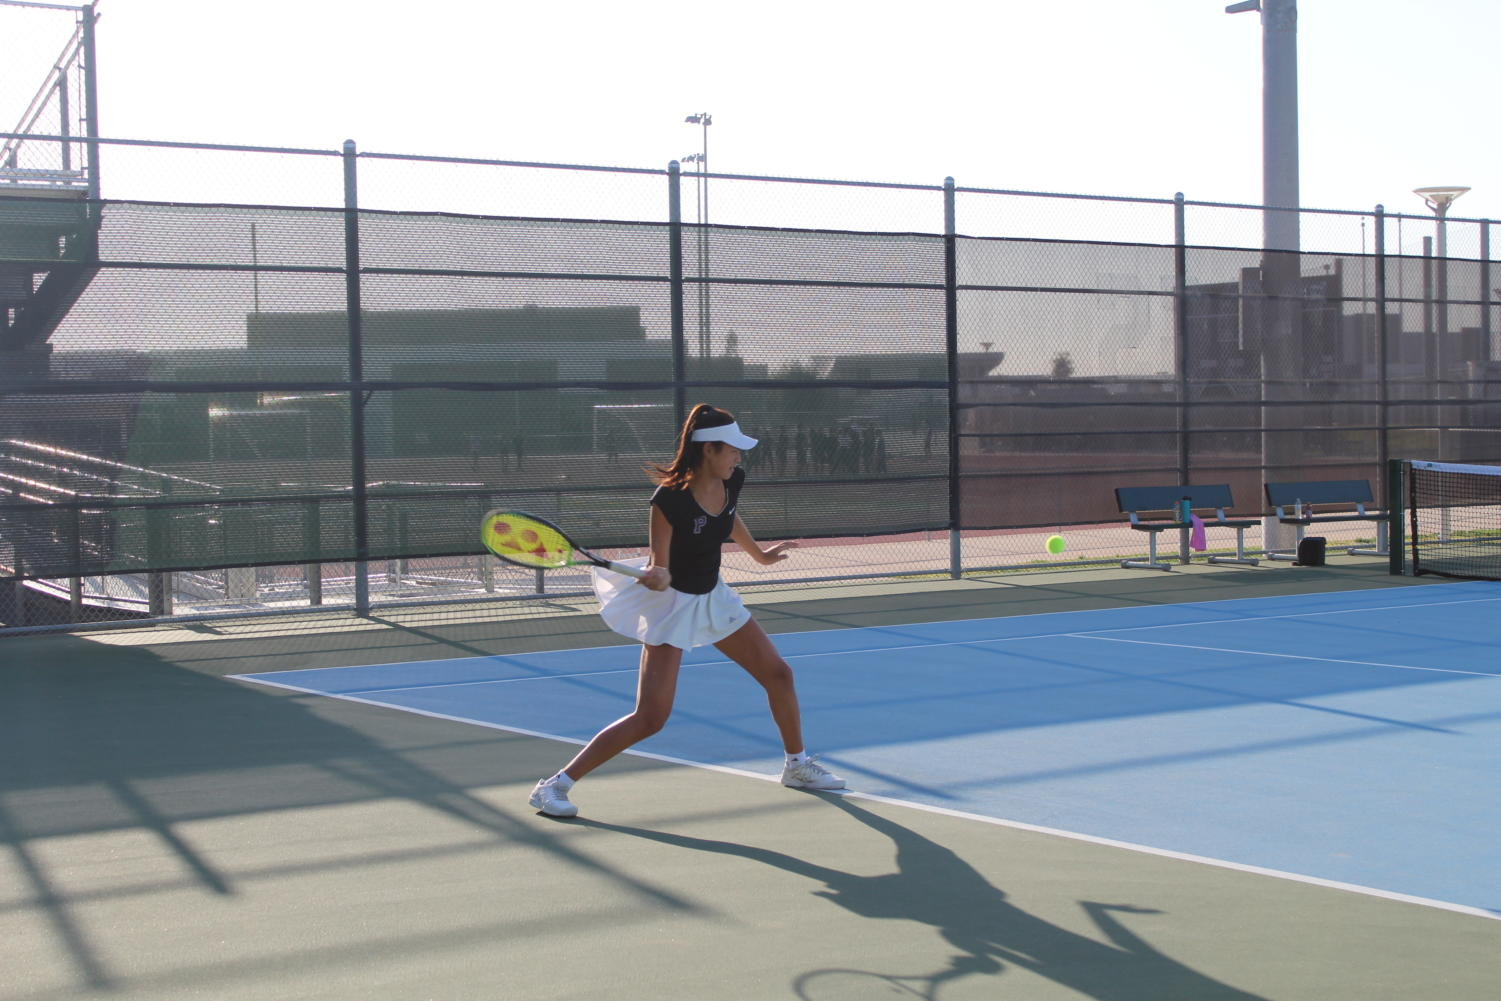 Freshman Anne Yang drives a forehand crosscourt after a short ball from her opponent. Yang went on to win the point and later win her match 6-0 against Trabuco Hills High's number two player.